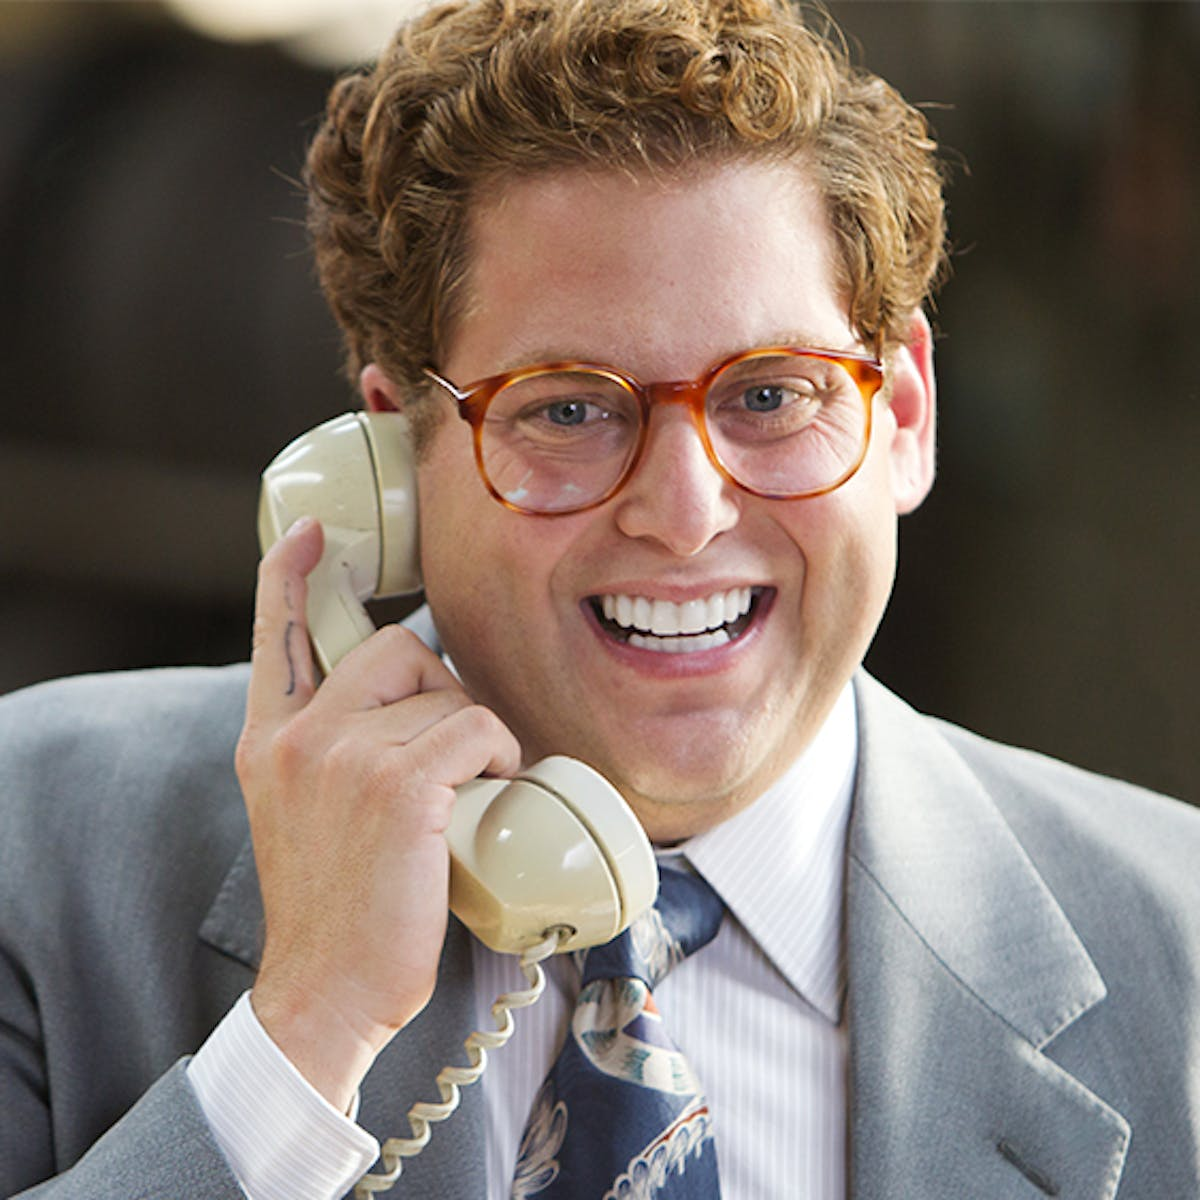 Jonah Hill 'Batman' casting is great news for the movie. Here's why.